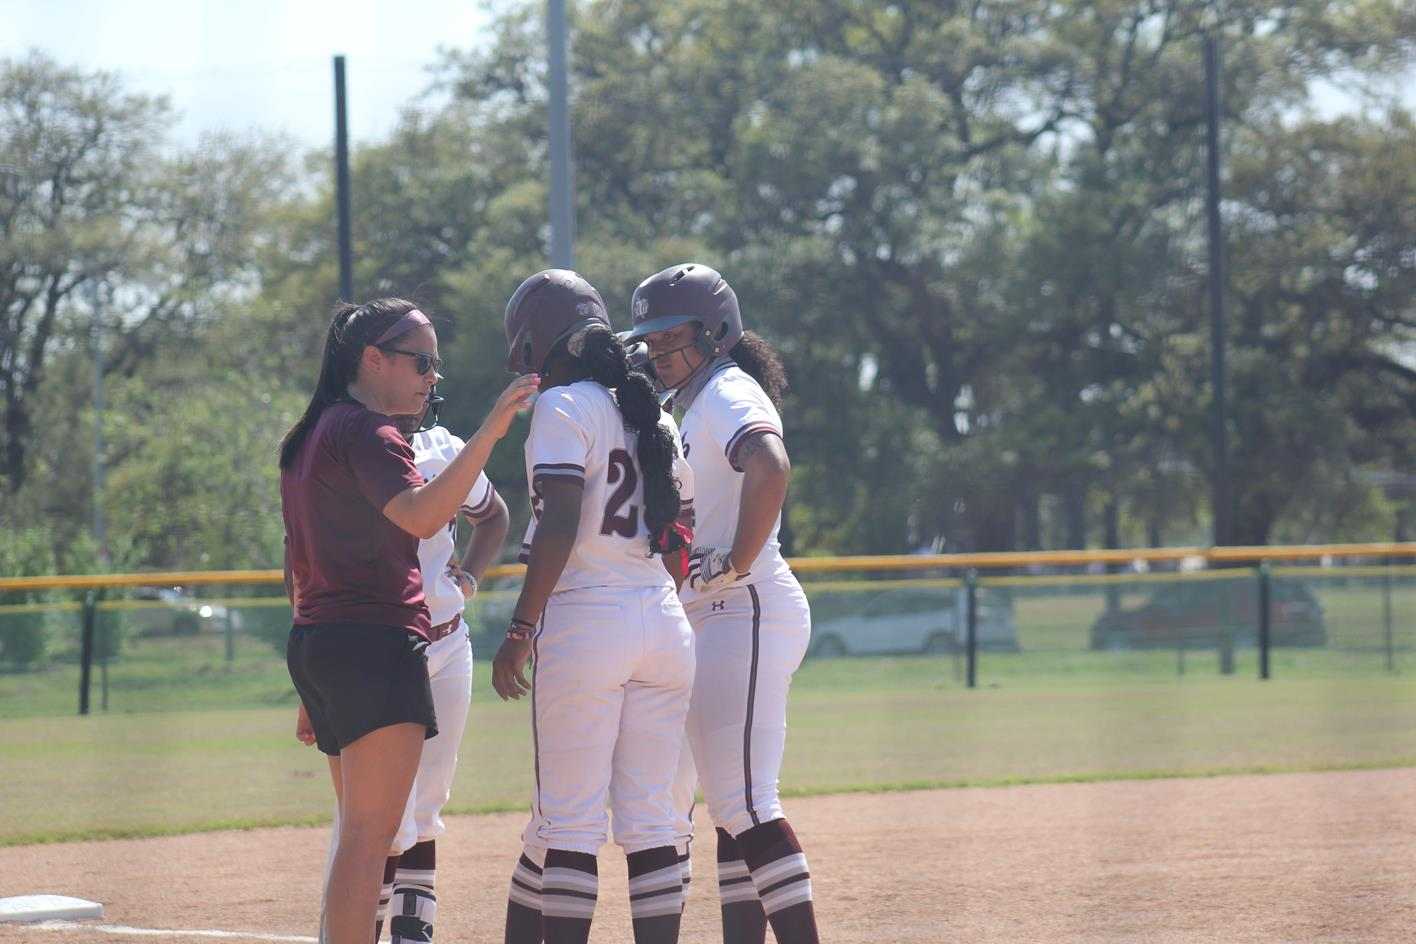 Softball To Host Southern In Key SWAC Series Thursday, Friday At Memorial Park